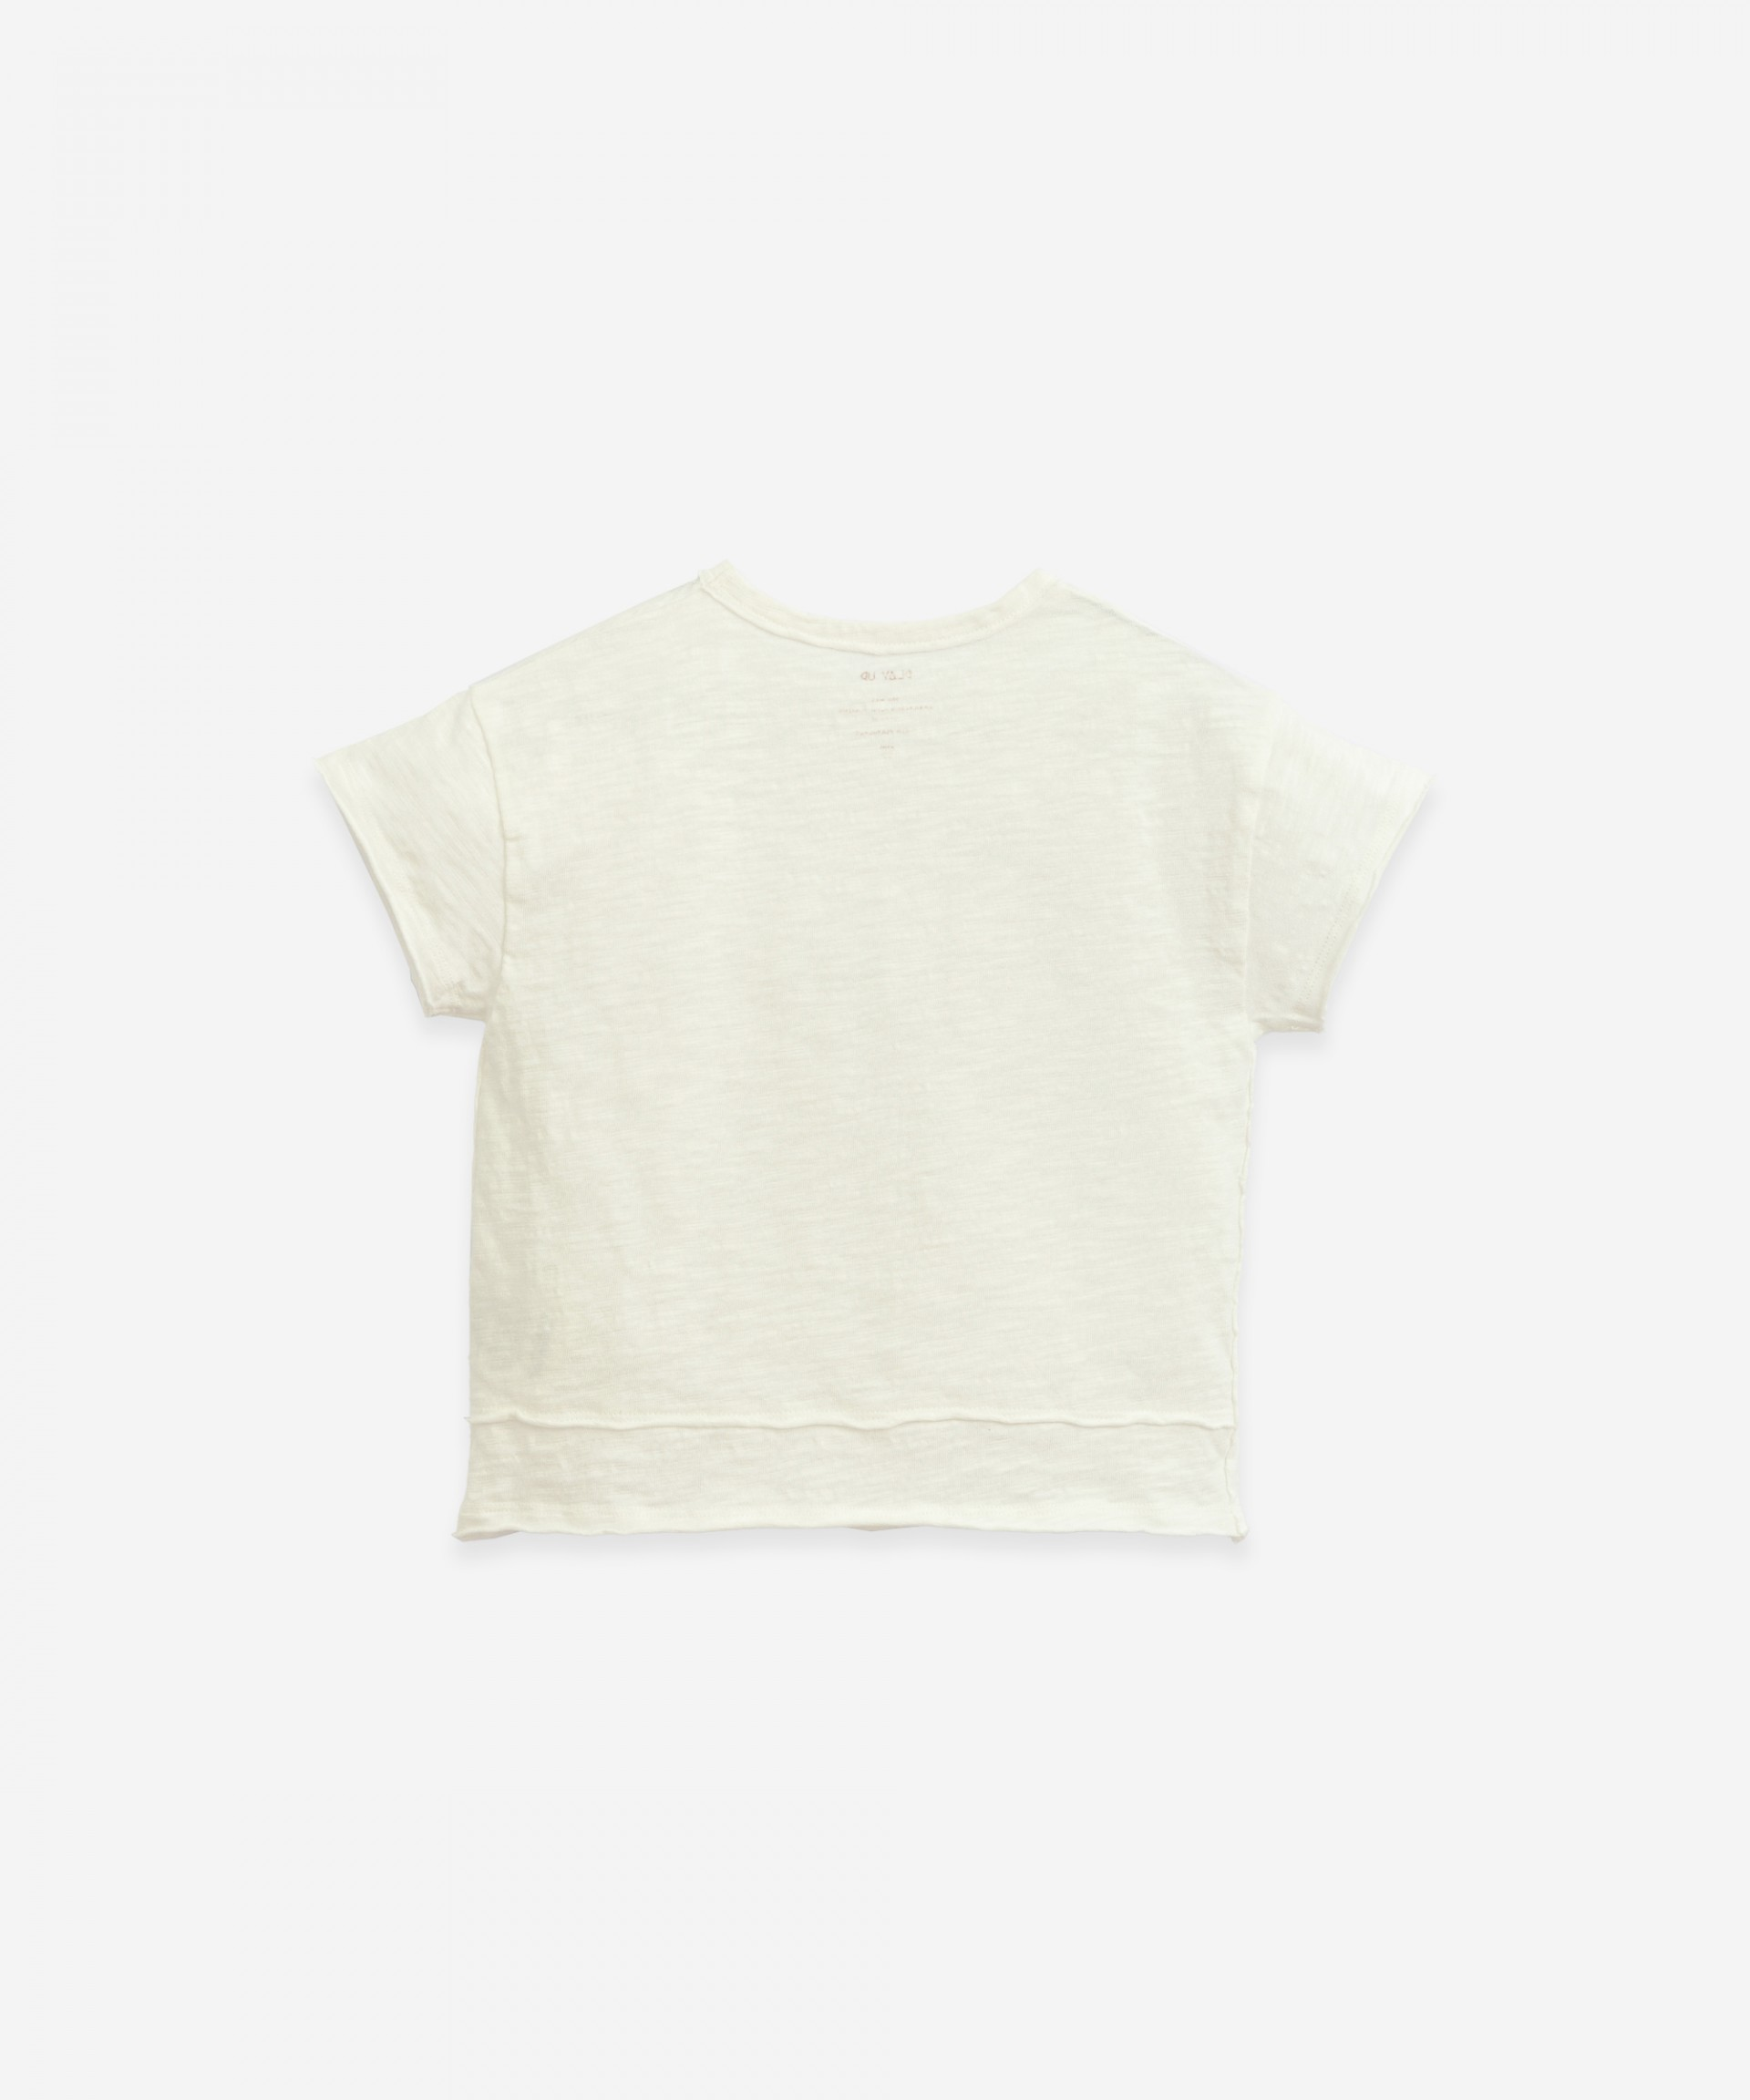 T-shirt in organic cotton | Botany